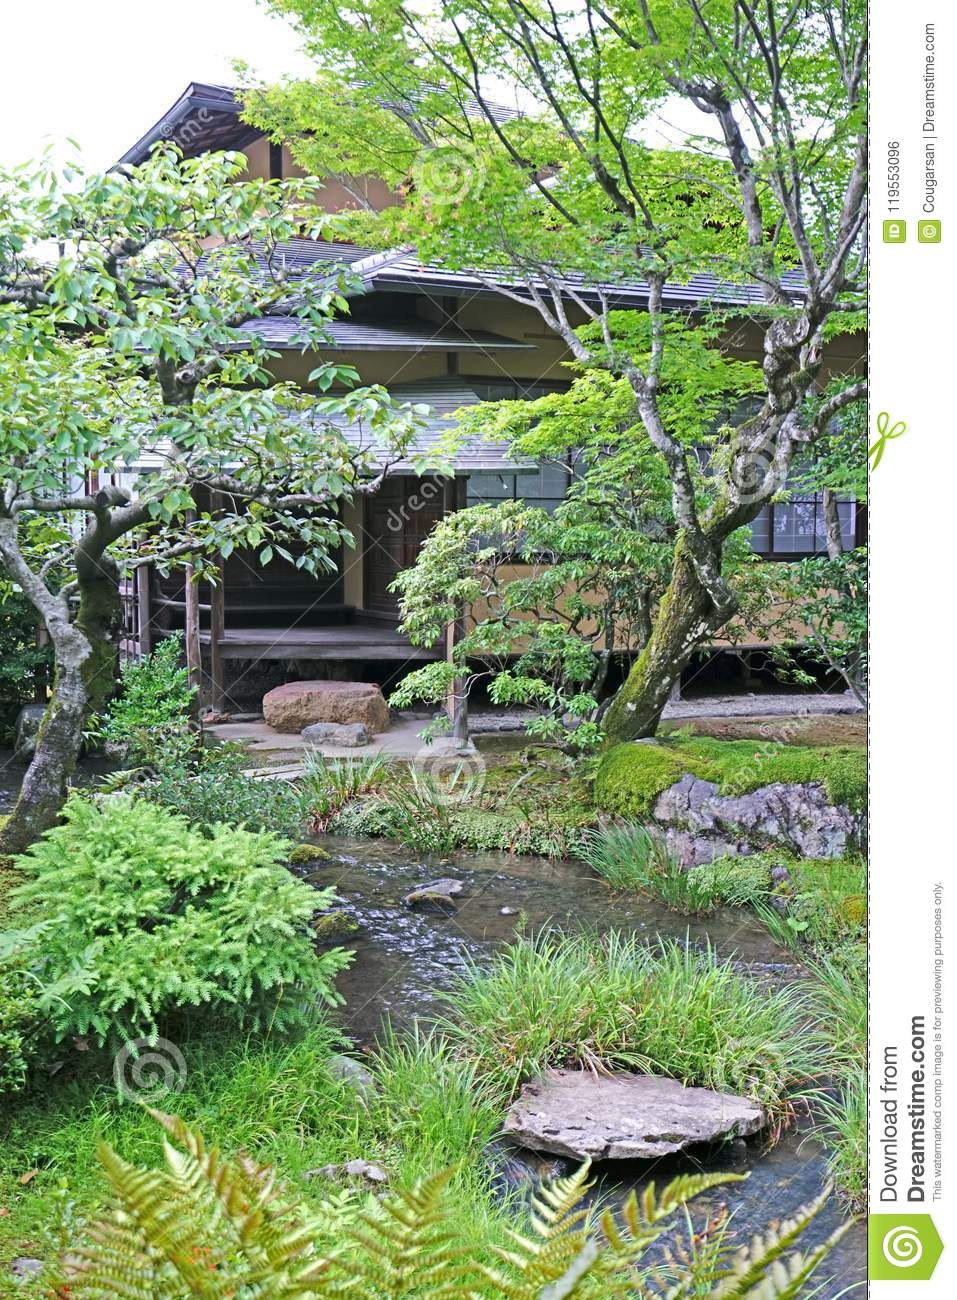 Dreamstime.com & Vertical Outdoor Footpath Green Plants And Pavilion In The ...